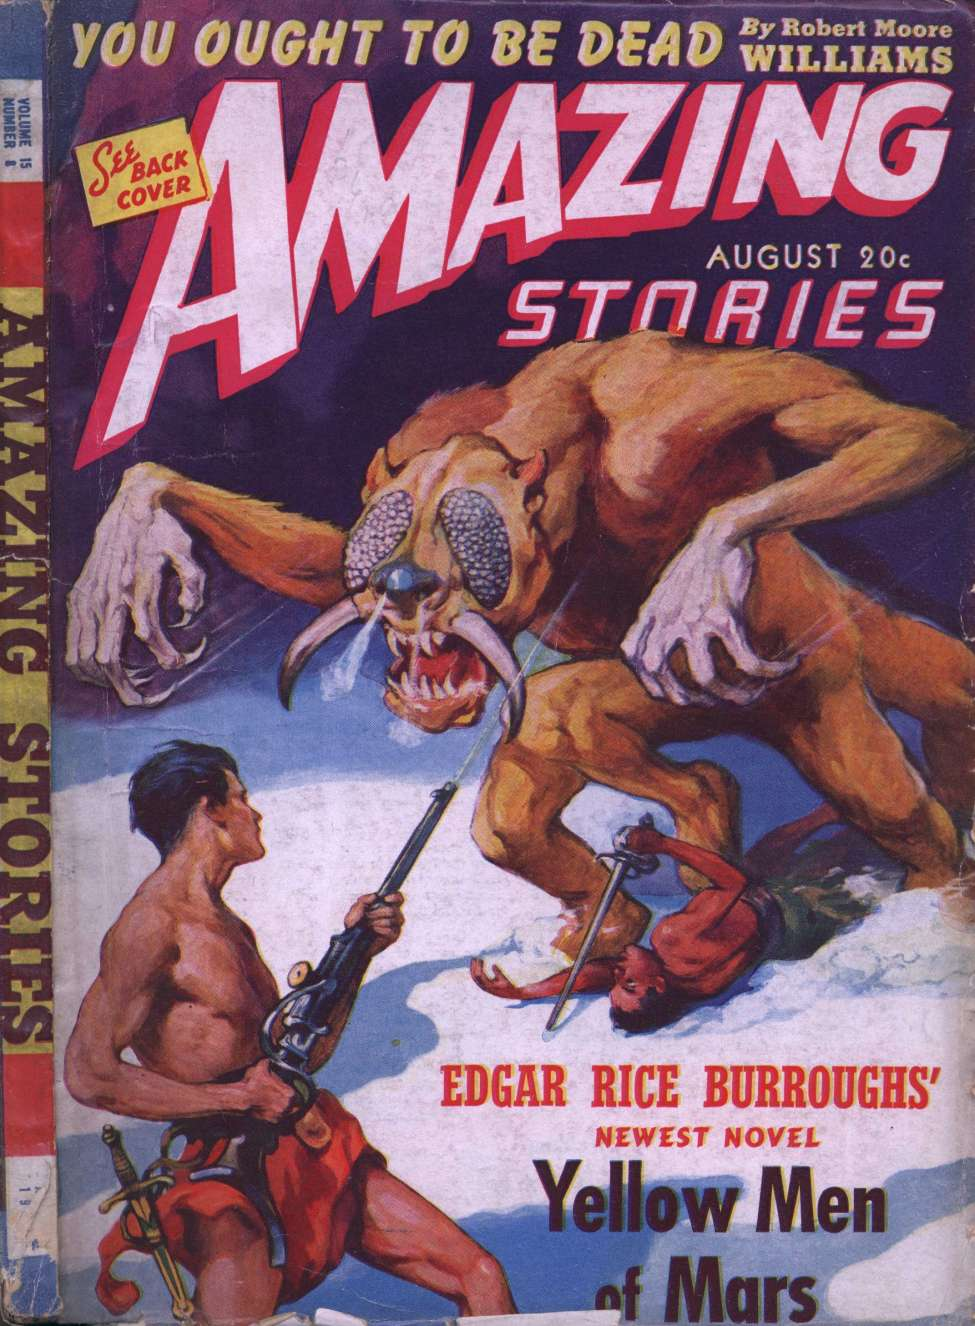 Comic Book Cover For Amazing Stories v15 08 - Yellow Men of Mars - Edgar Rice Burroughs